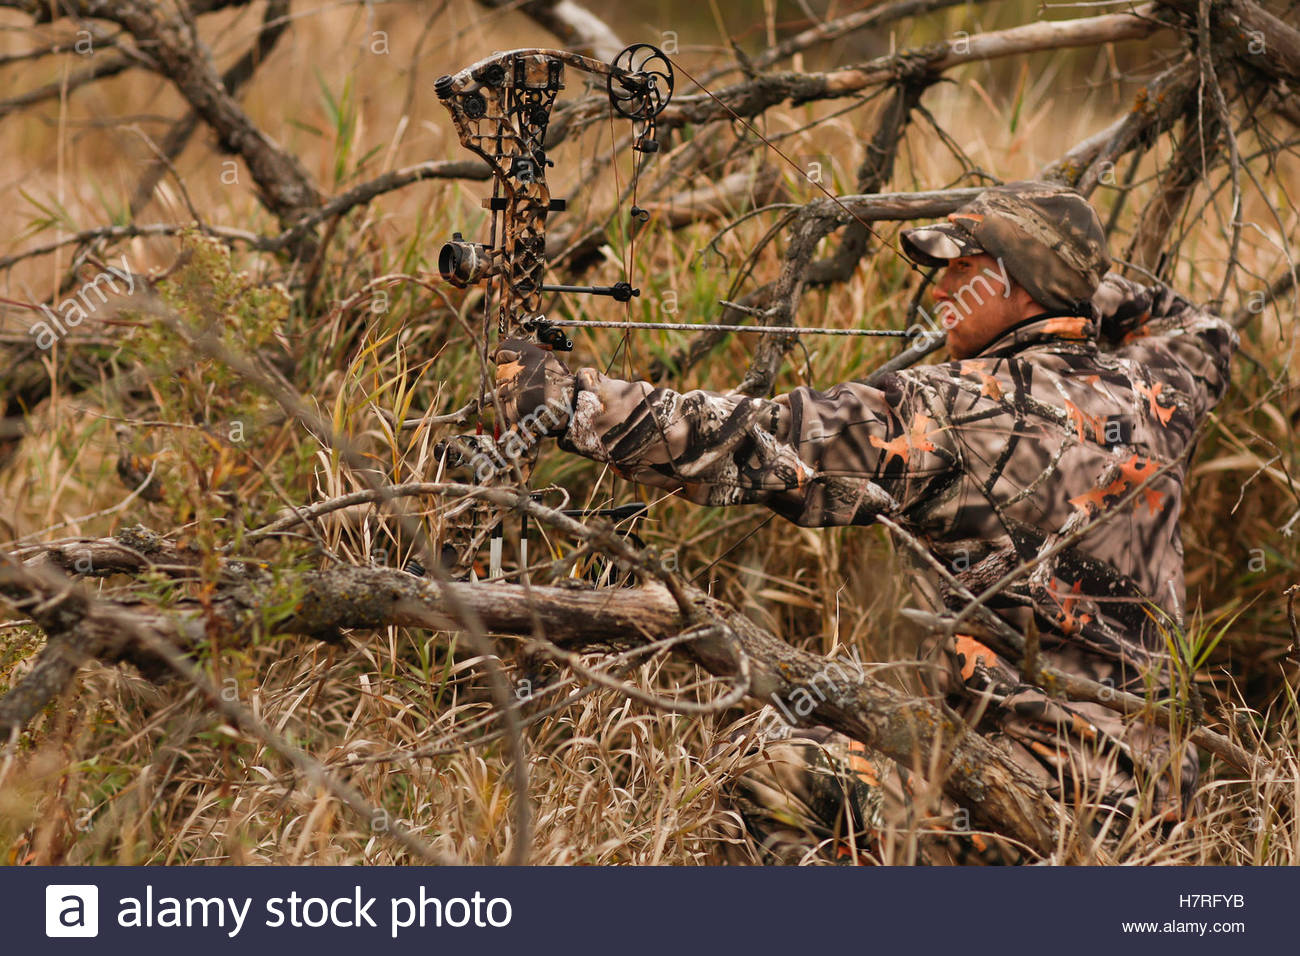 1300x956 Hunter Drawing Bow For Ground Hunting Stock Photo 125292591